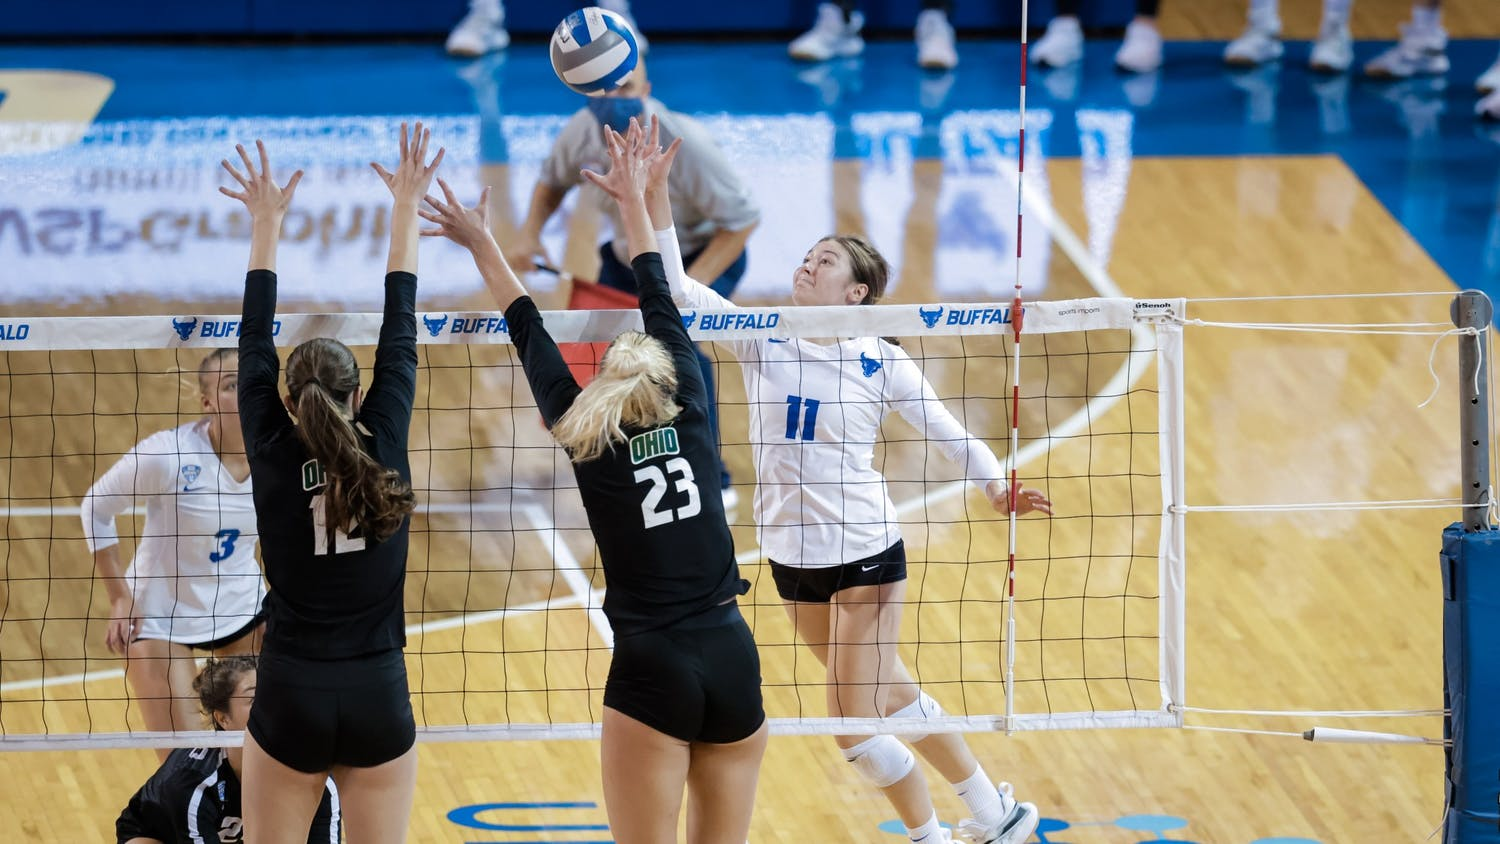 Freshman outside hitter Maria Futey (11) goes for a spike during a recent game against Ohio.